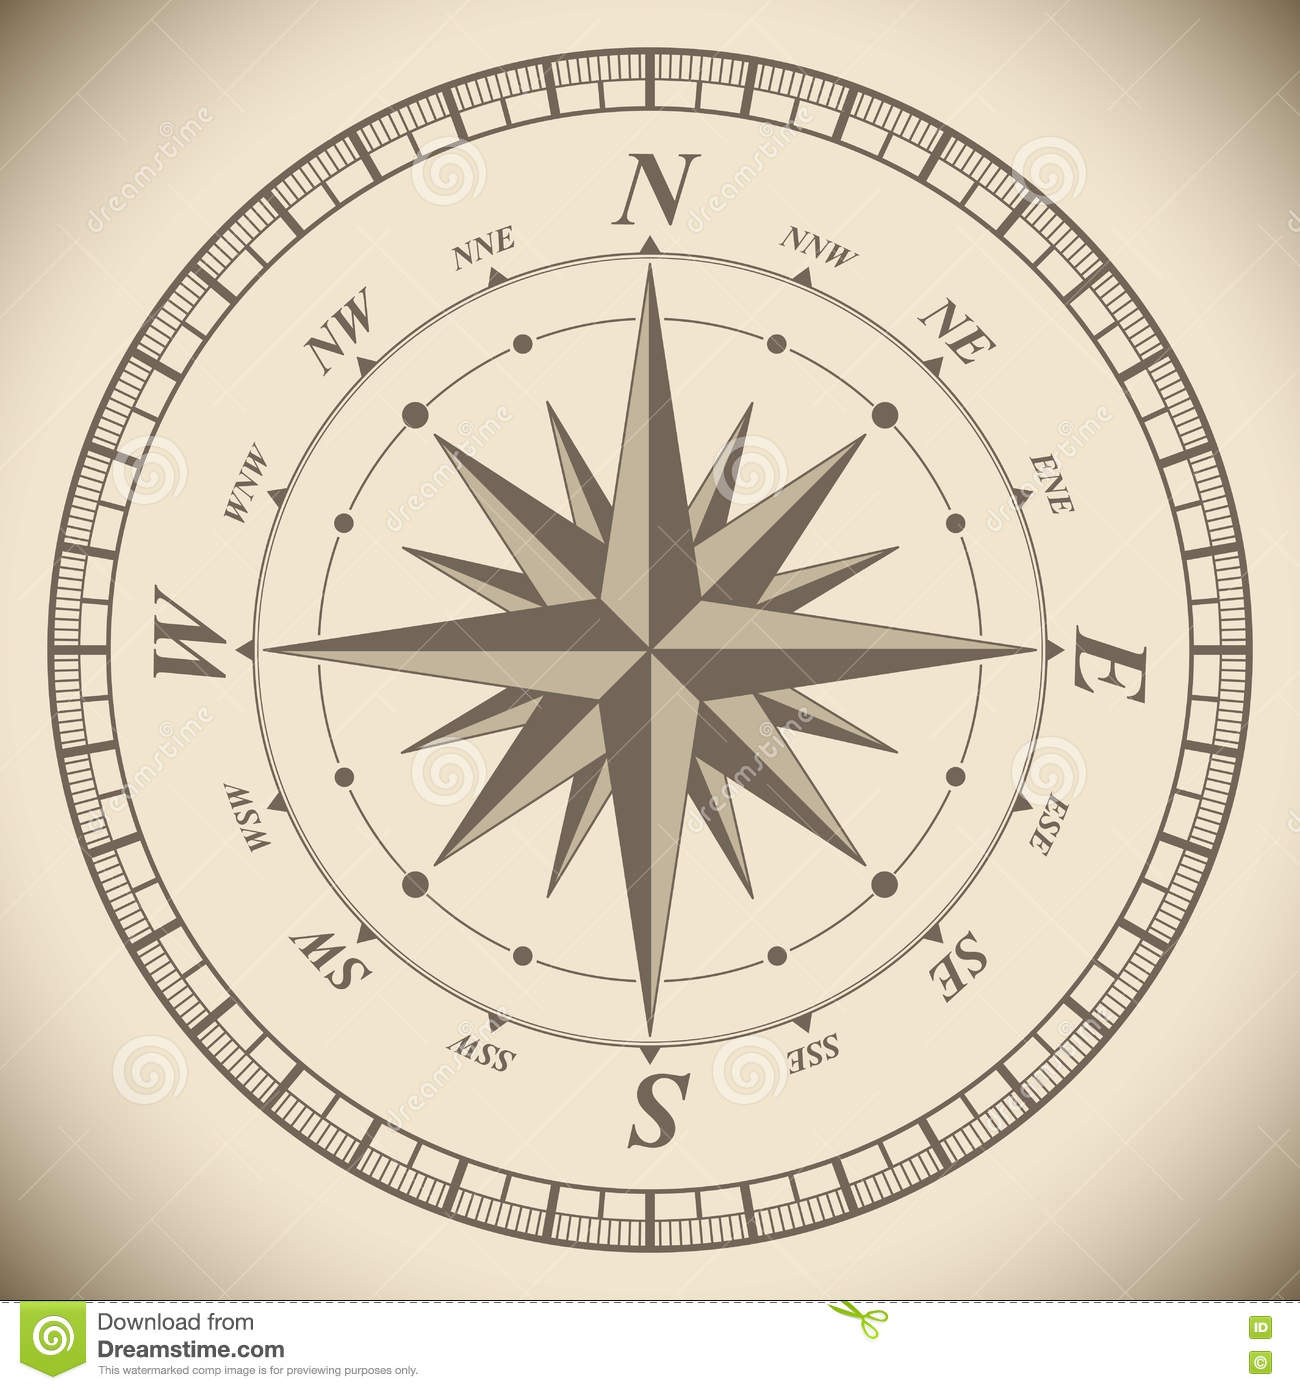 Vintage Compass Wind Rose Template Stock Vector Illustration Of